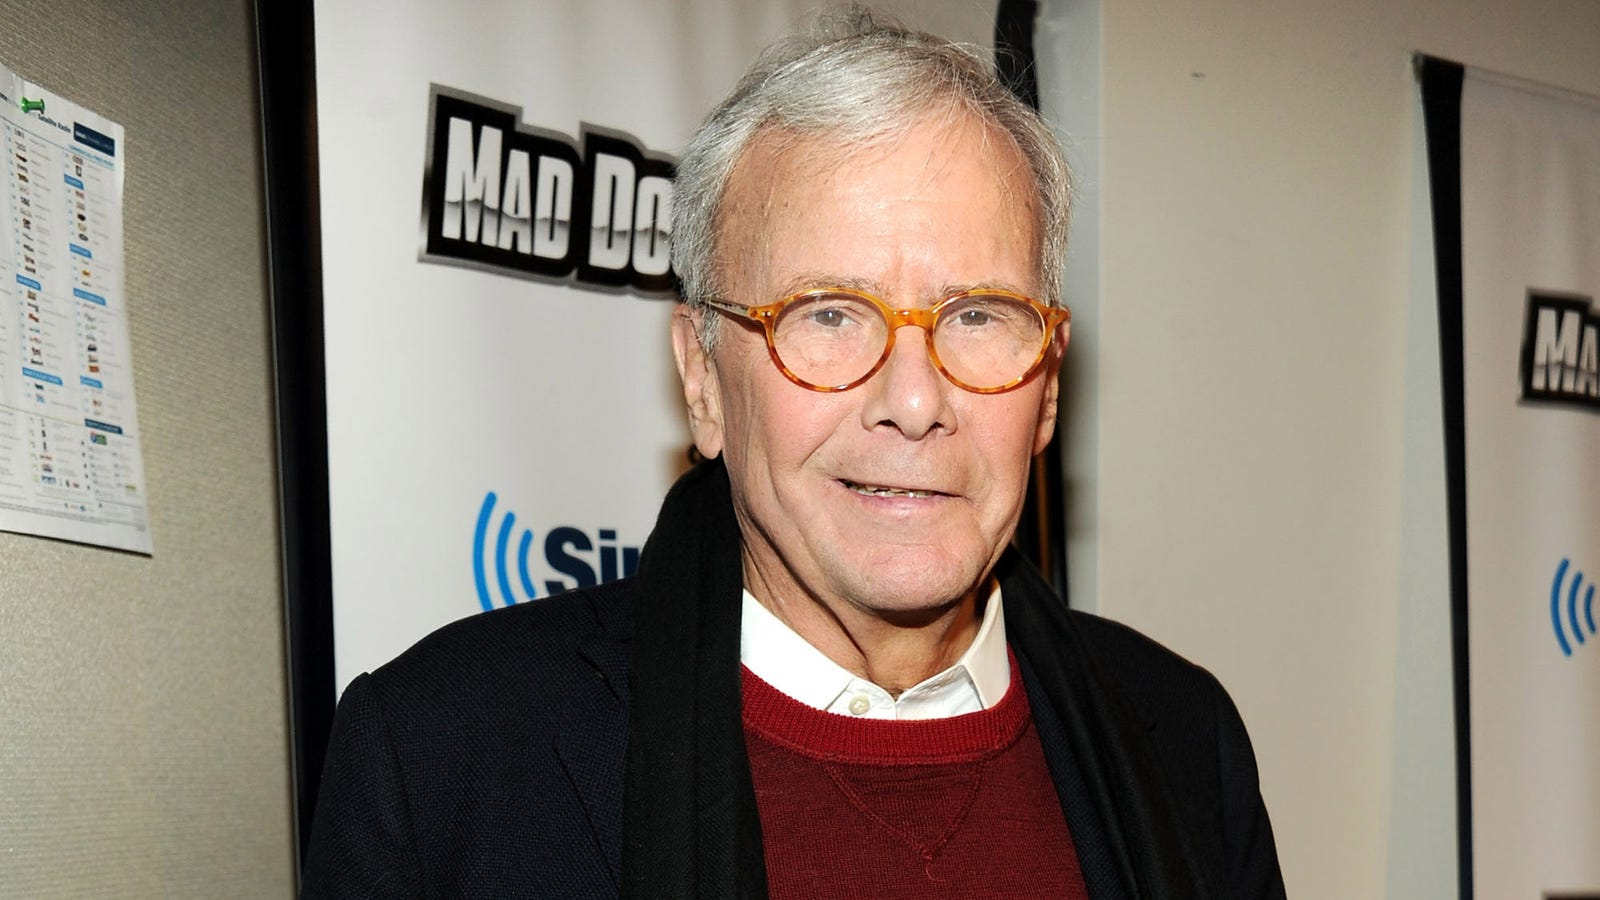 brokaw personals I just heard that there is a boycott going on to turn off oprah's show because she refuse's to have alaskan governor, sarah palin on her show hmmm, even though i am not a repulican i think it's.